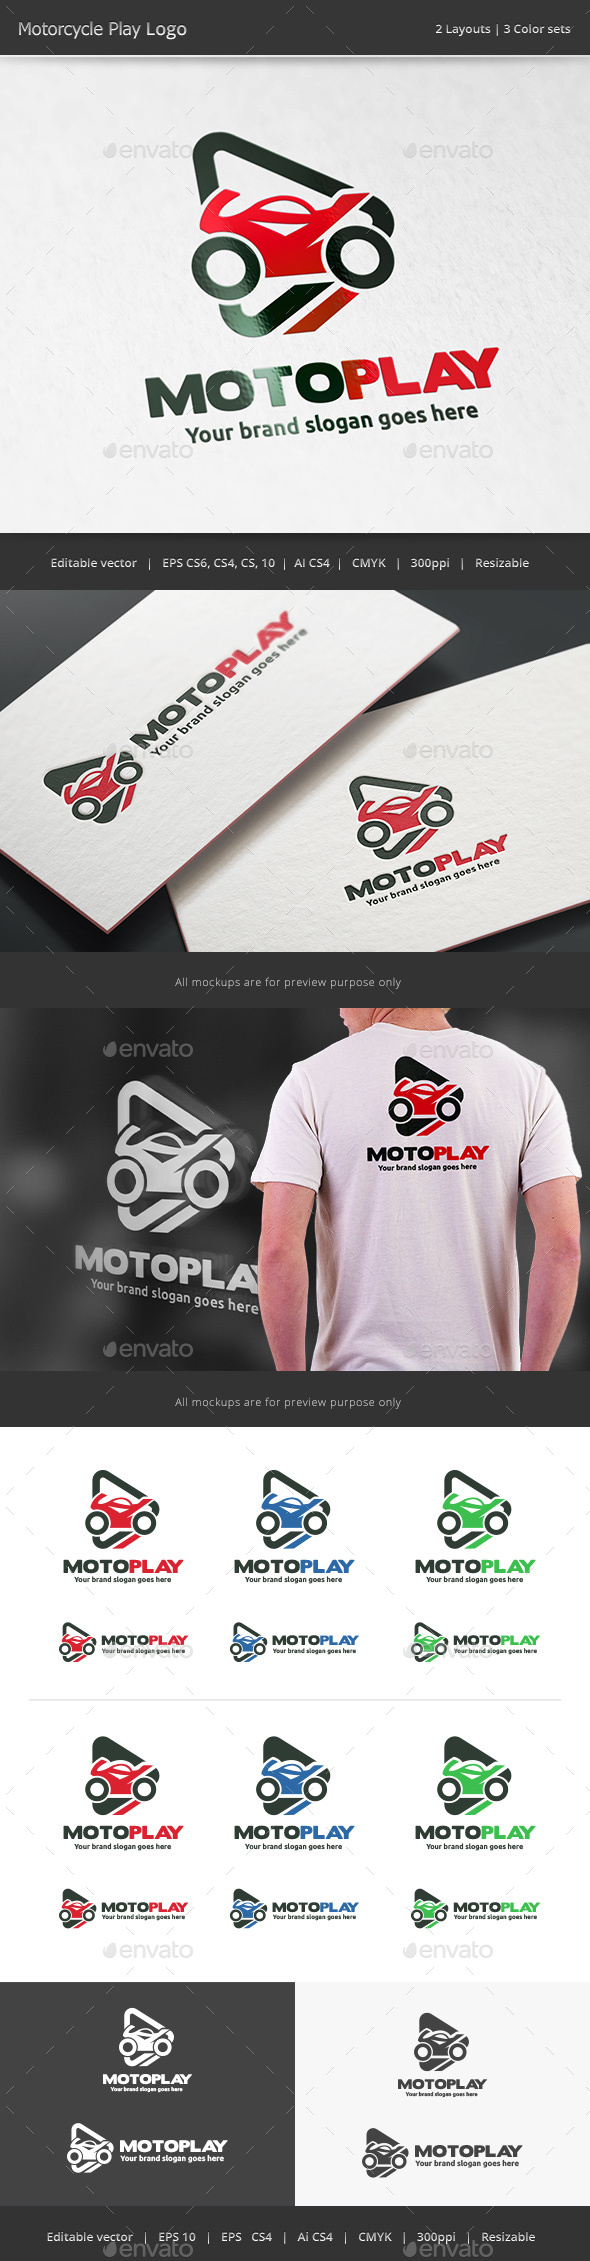 Motorcycle Play Logo - Vector Abstract